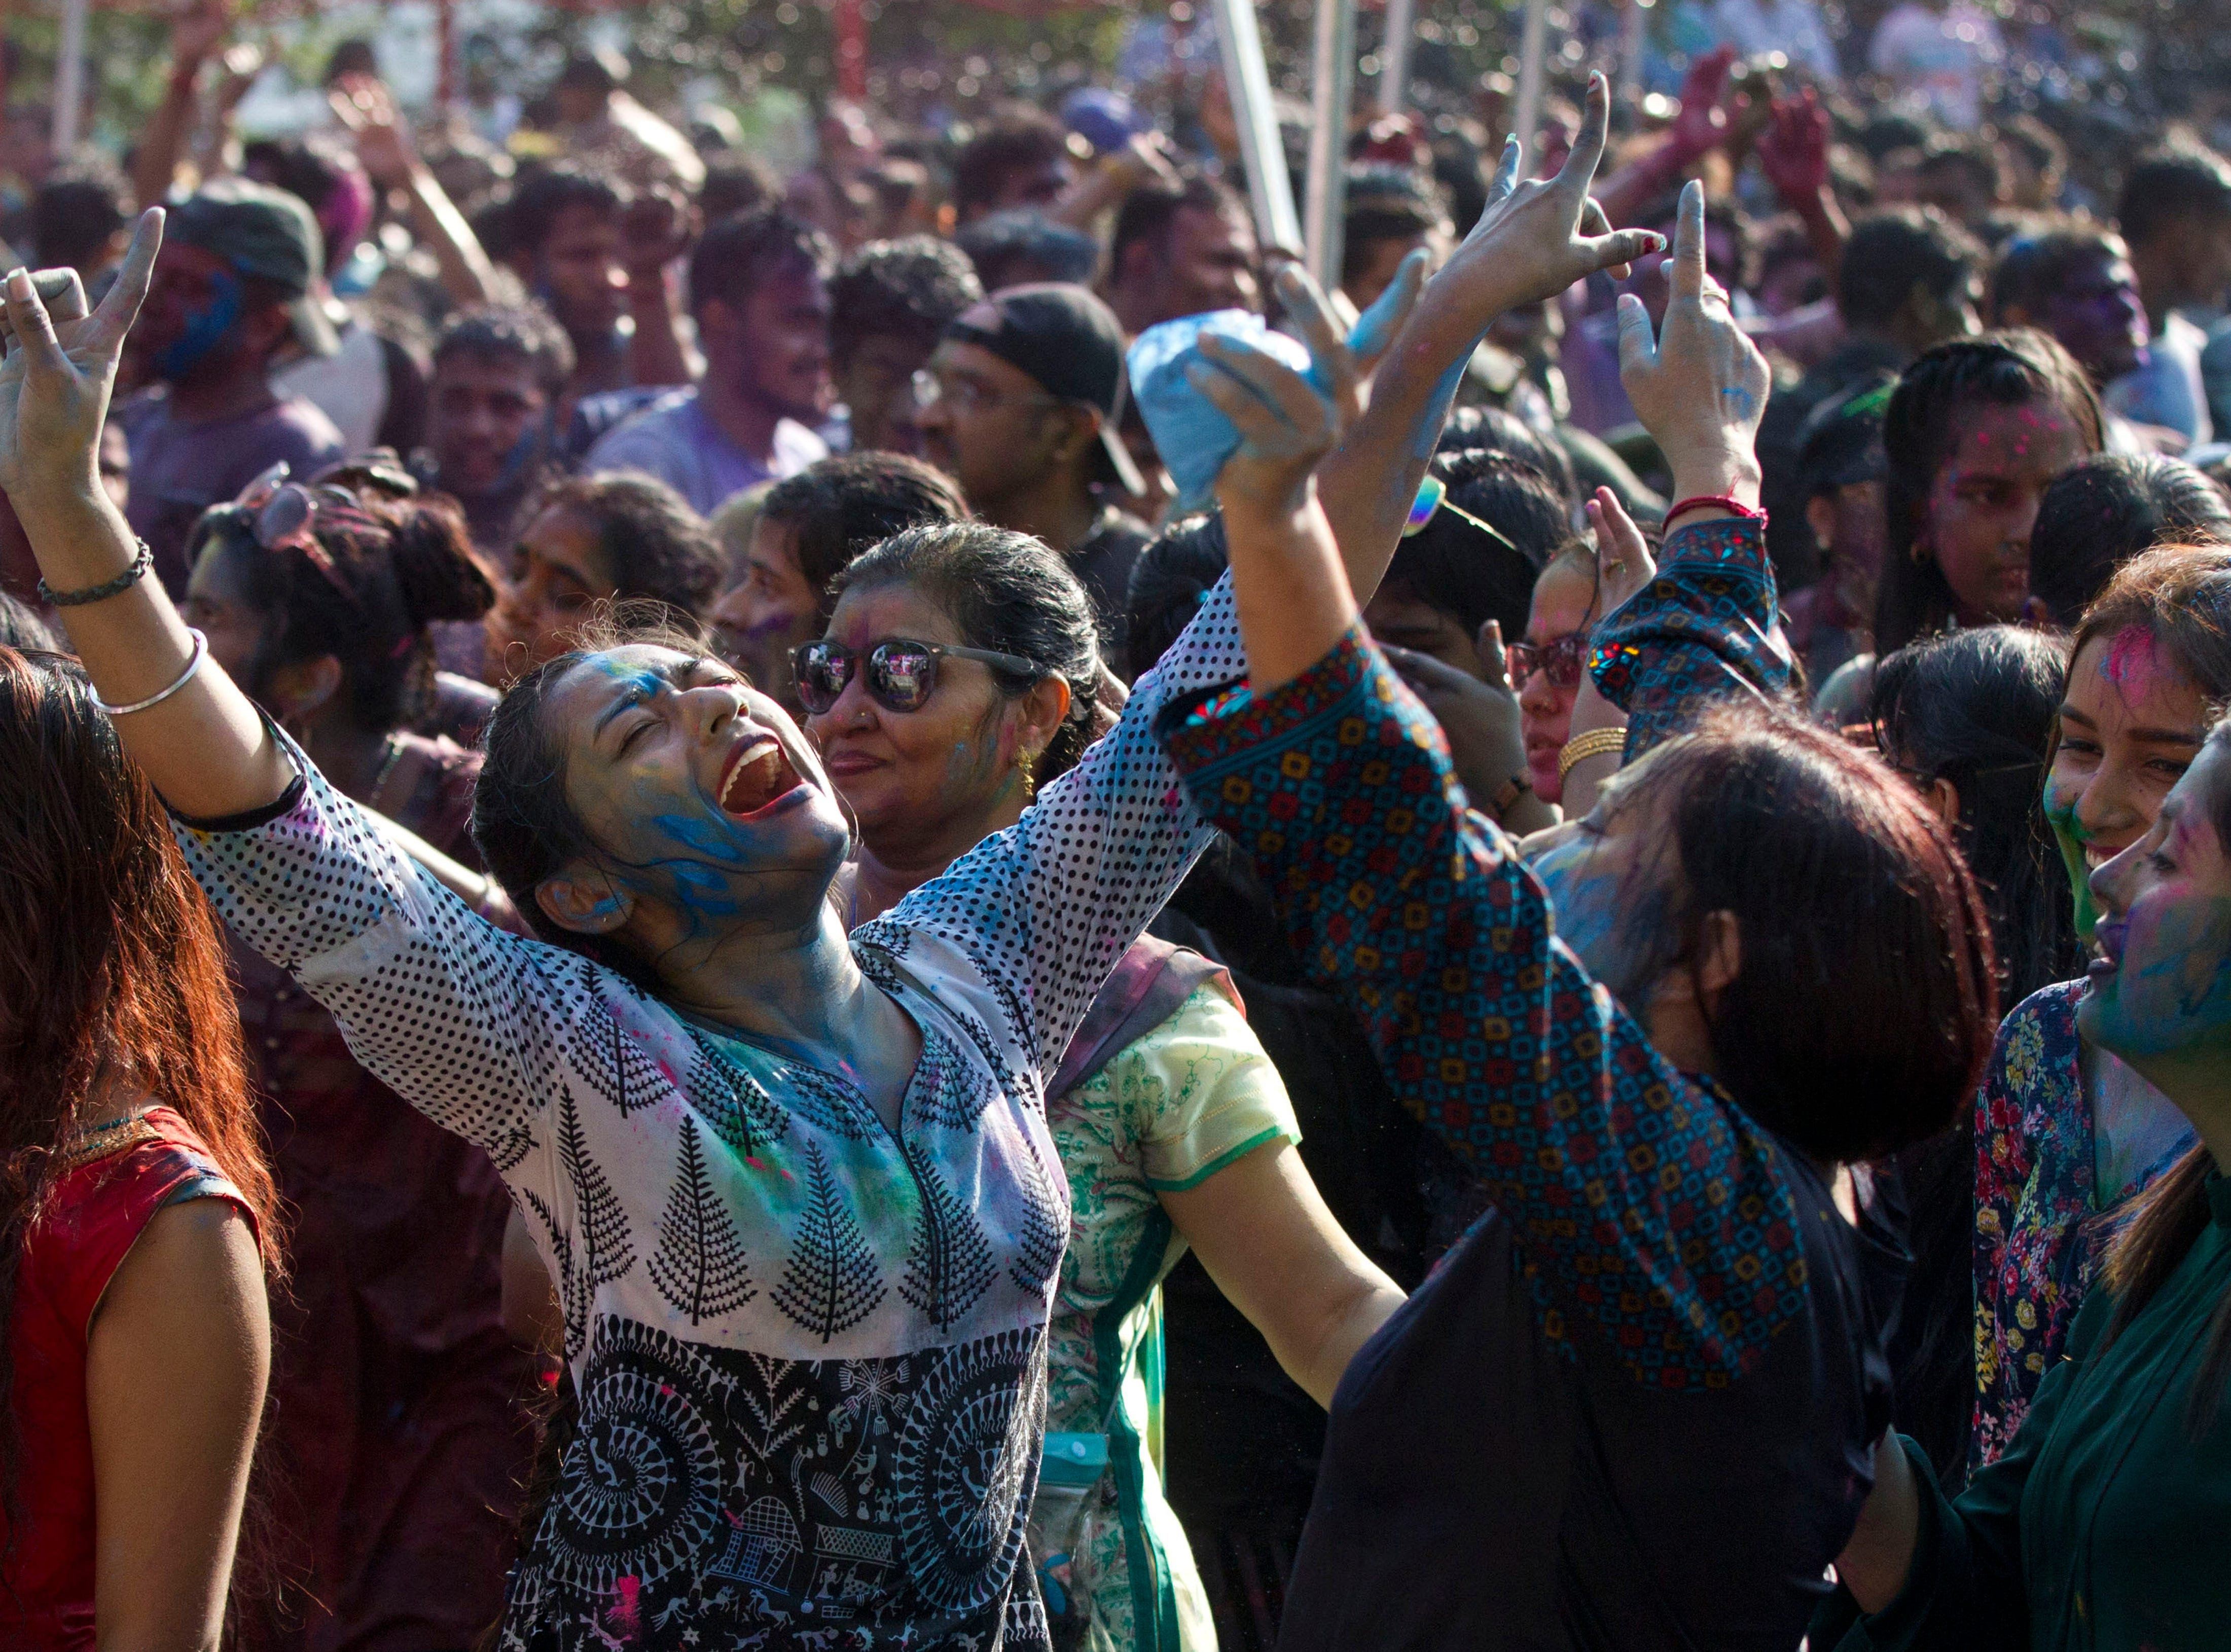 Revelers dance as they celebrate Holi, also known as the Festival of Colors, organized by the Hindu community at a park Wednesday, March 20, 2019, in Yangon, Myanmar.